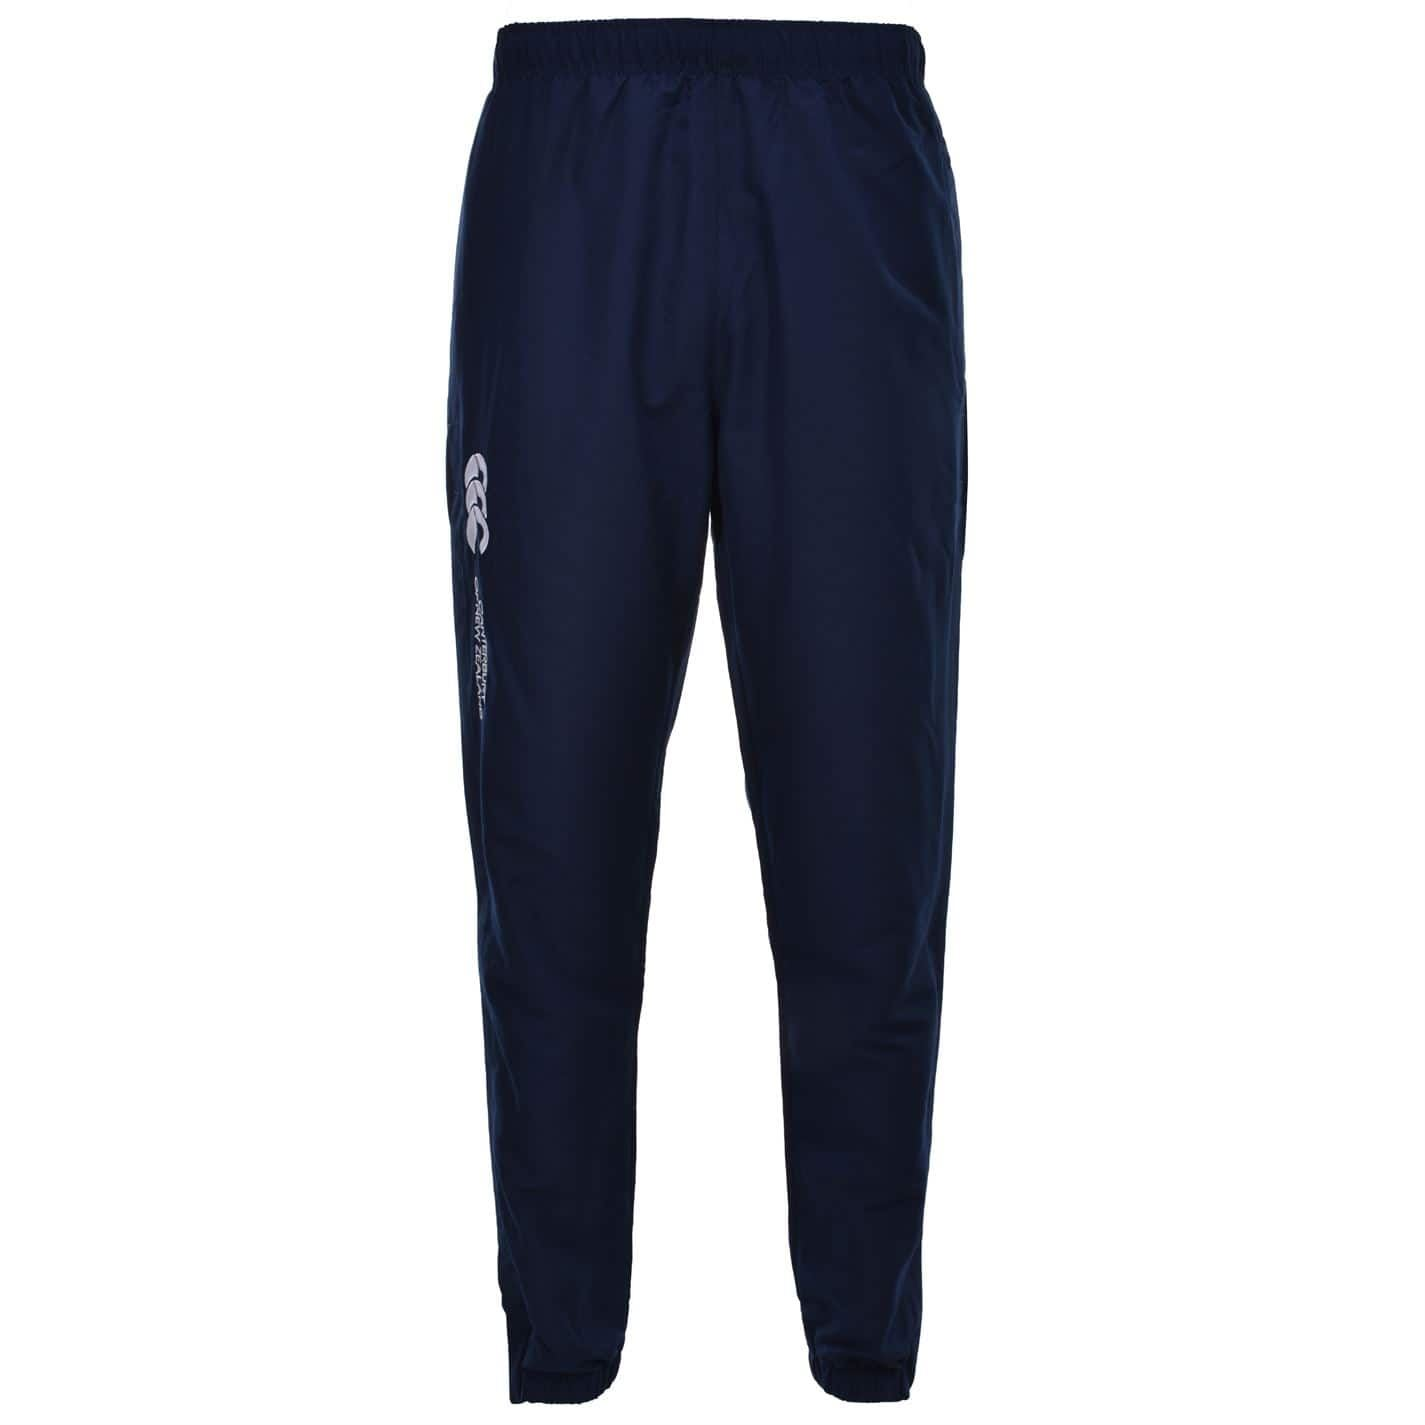 Canterbury-Cuffed-Stadium-Tracksuit-Pants-Mens-Rugby-Sweatpants-Fan-Bottoms thumbnail 9